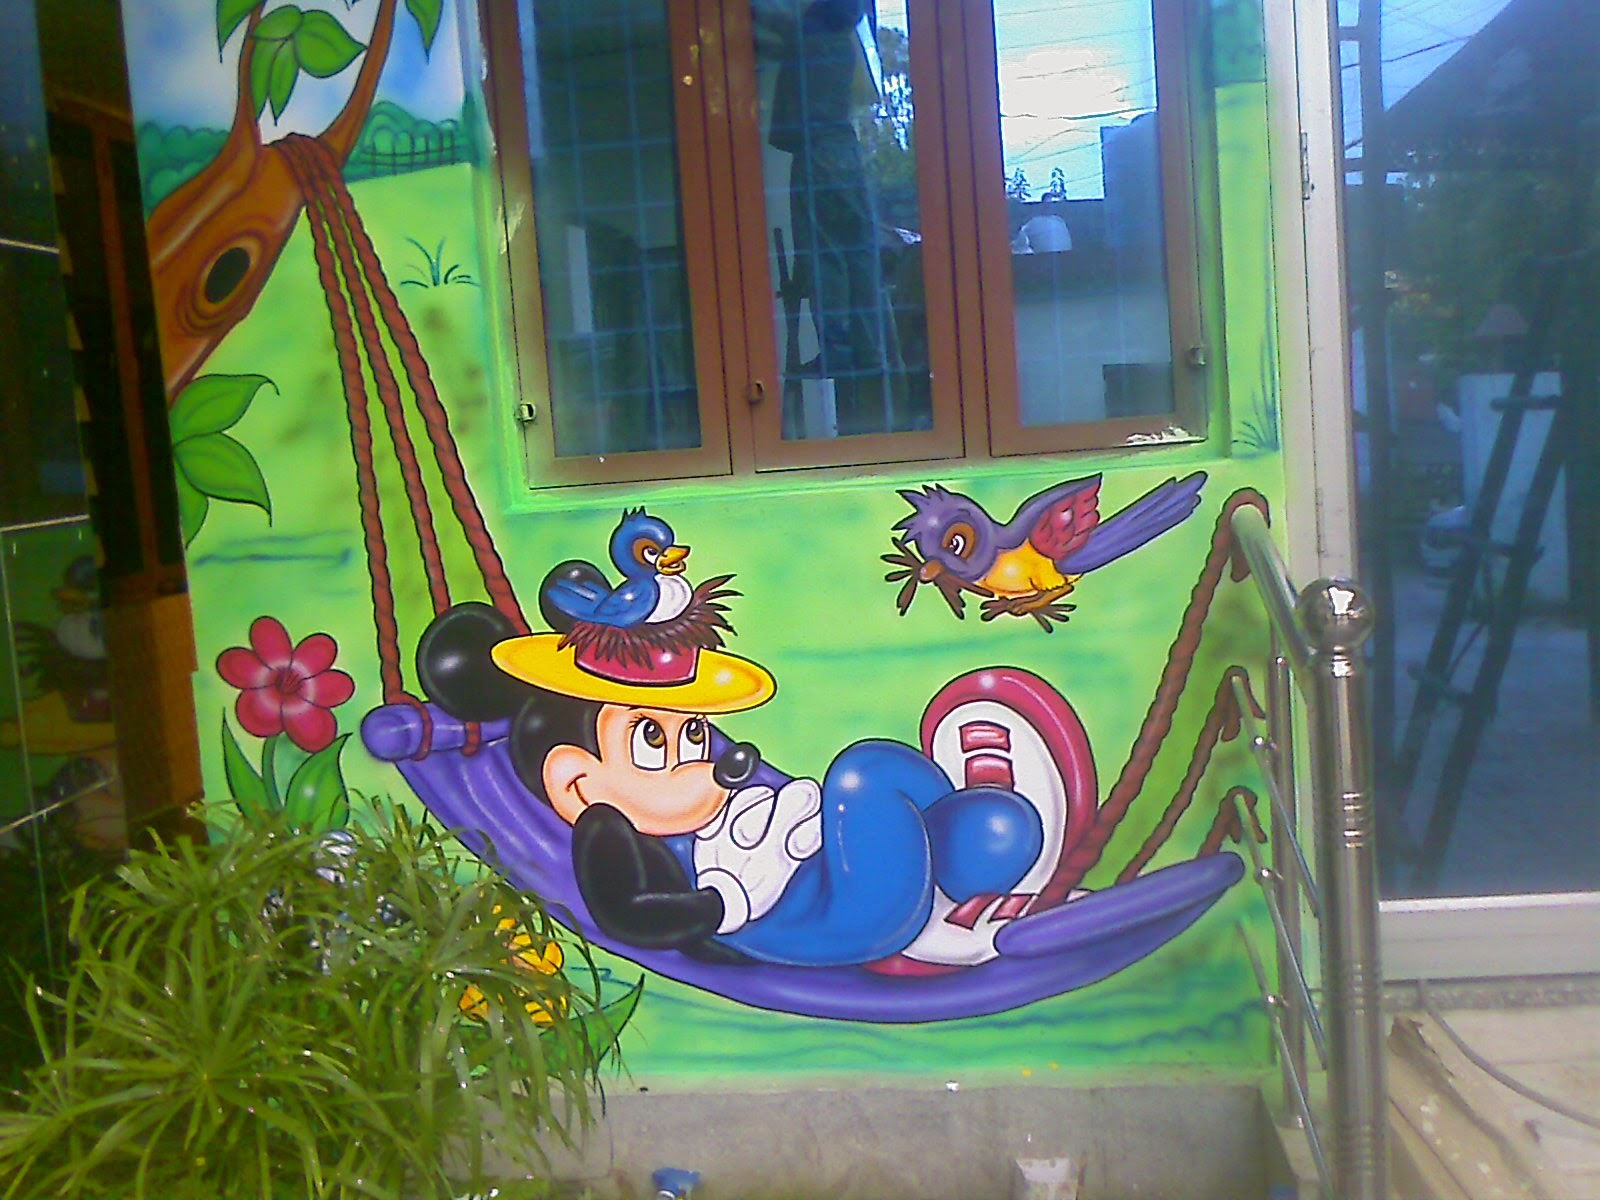 Murals For Outside Walls Play School Wall Painting 3d Cartoon Painting School